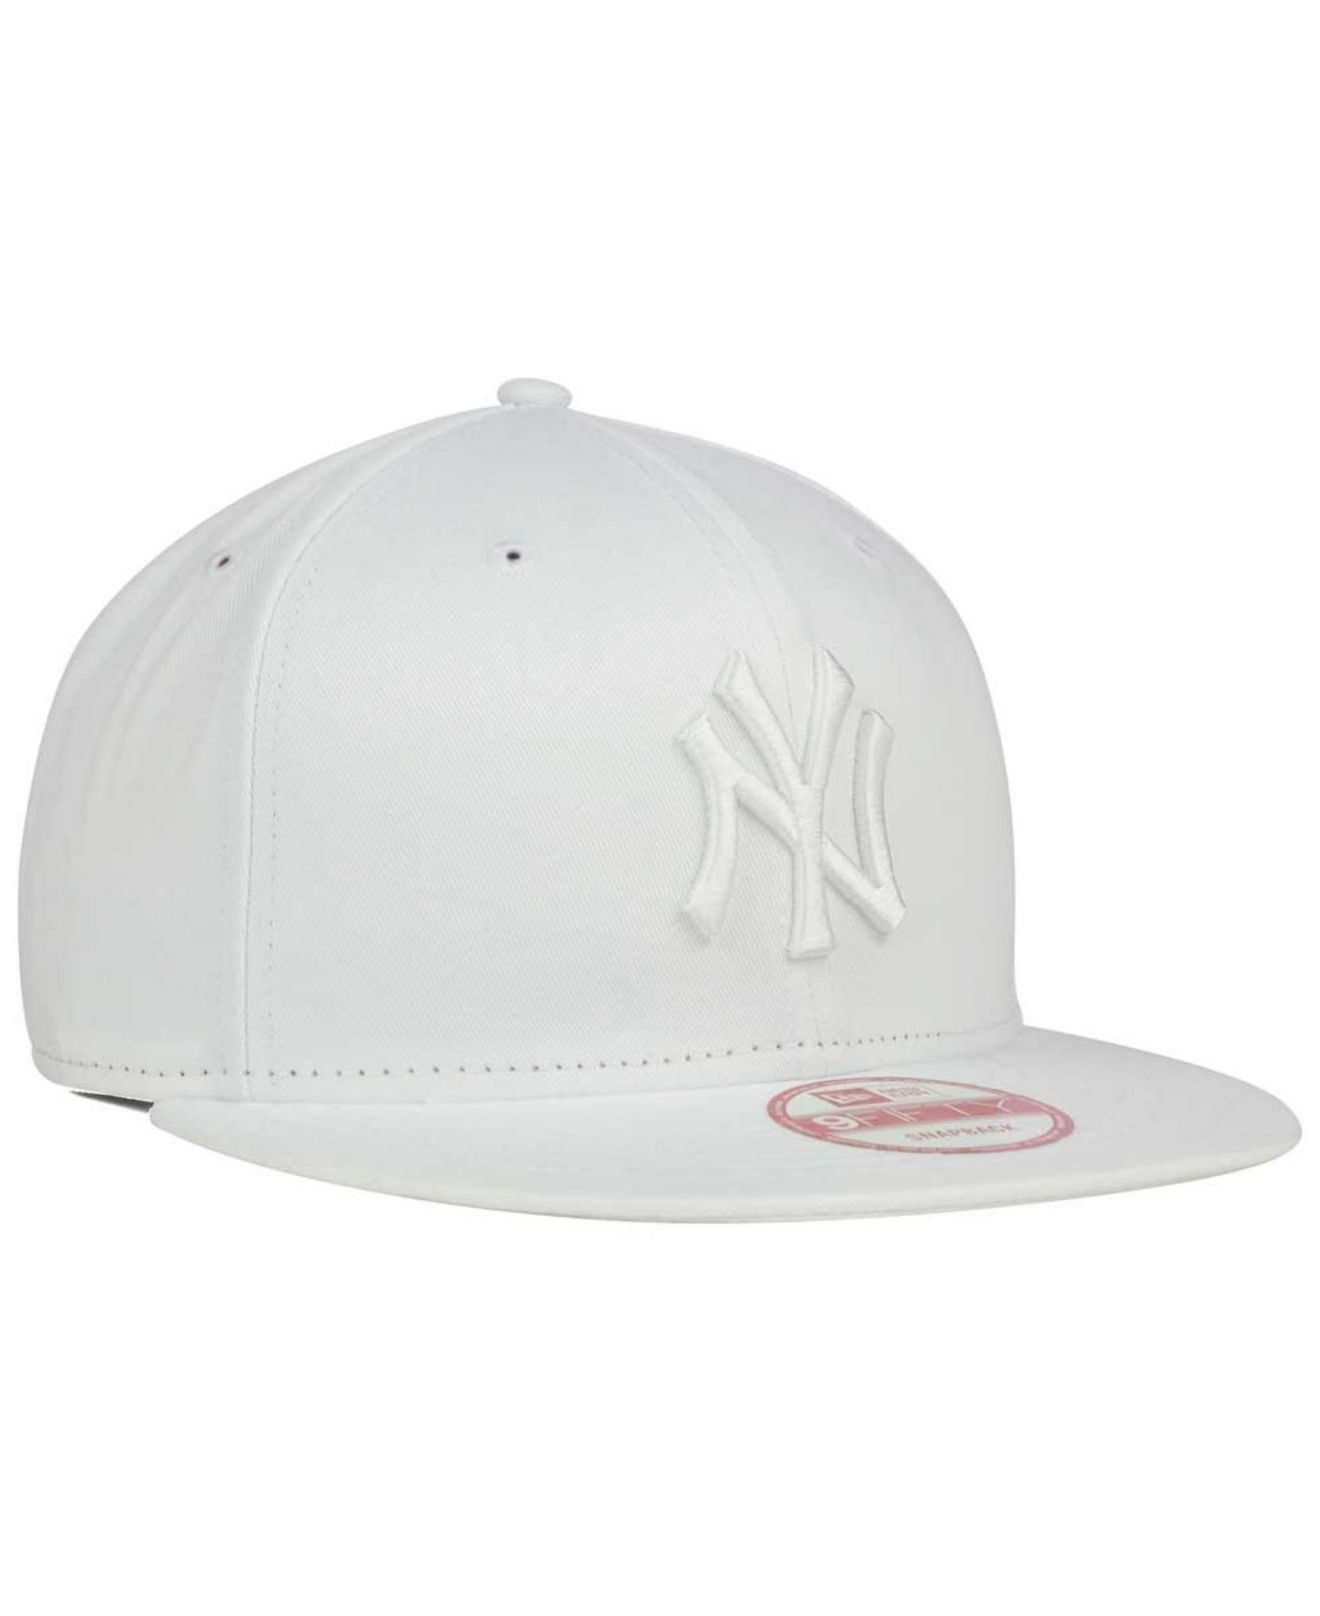 Lyst - KTZ New York Yankees White On White 9fifty Snapback Cap in ... 8042017ca63